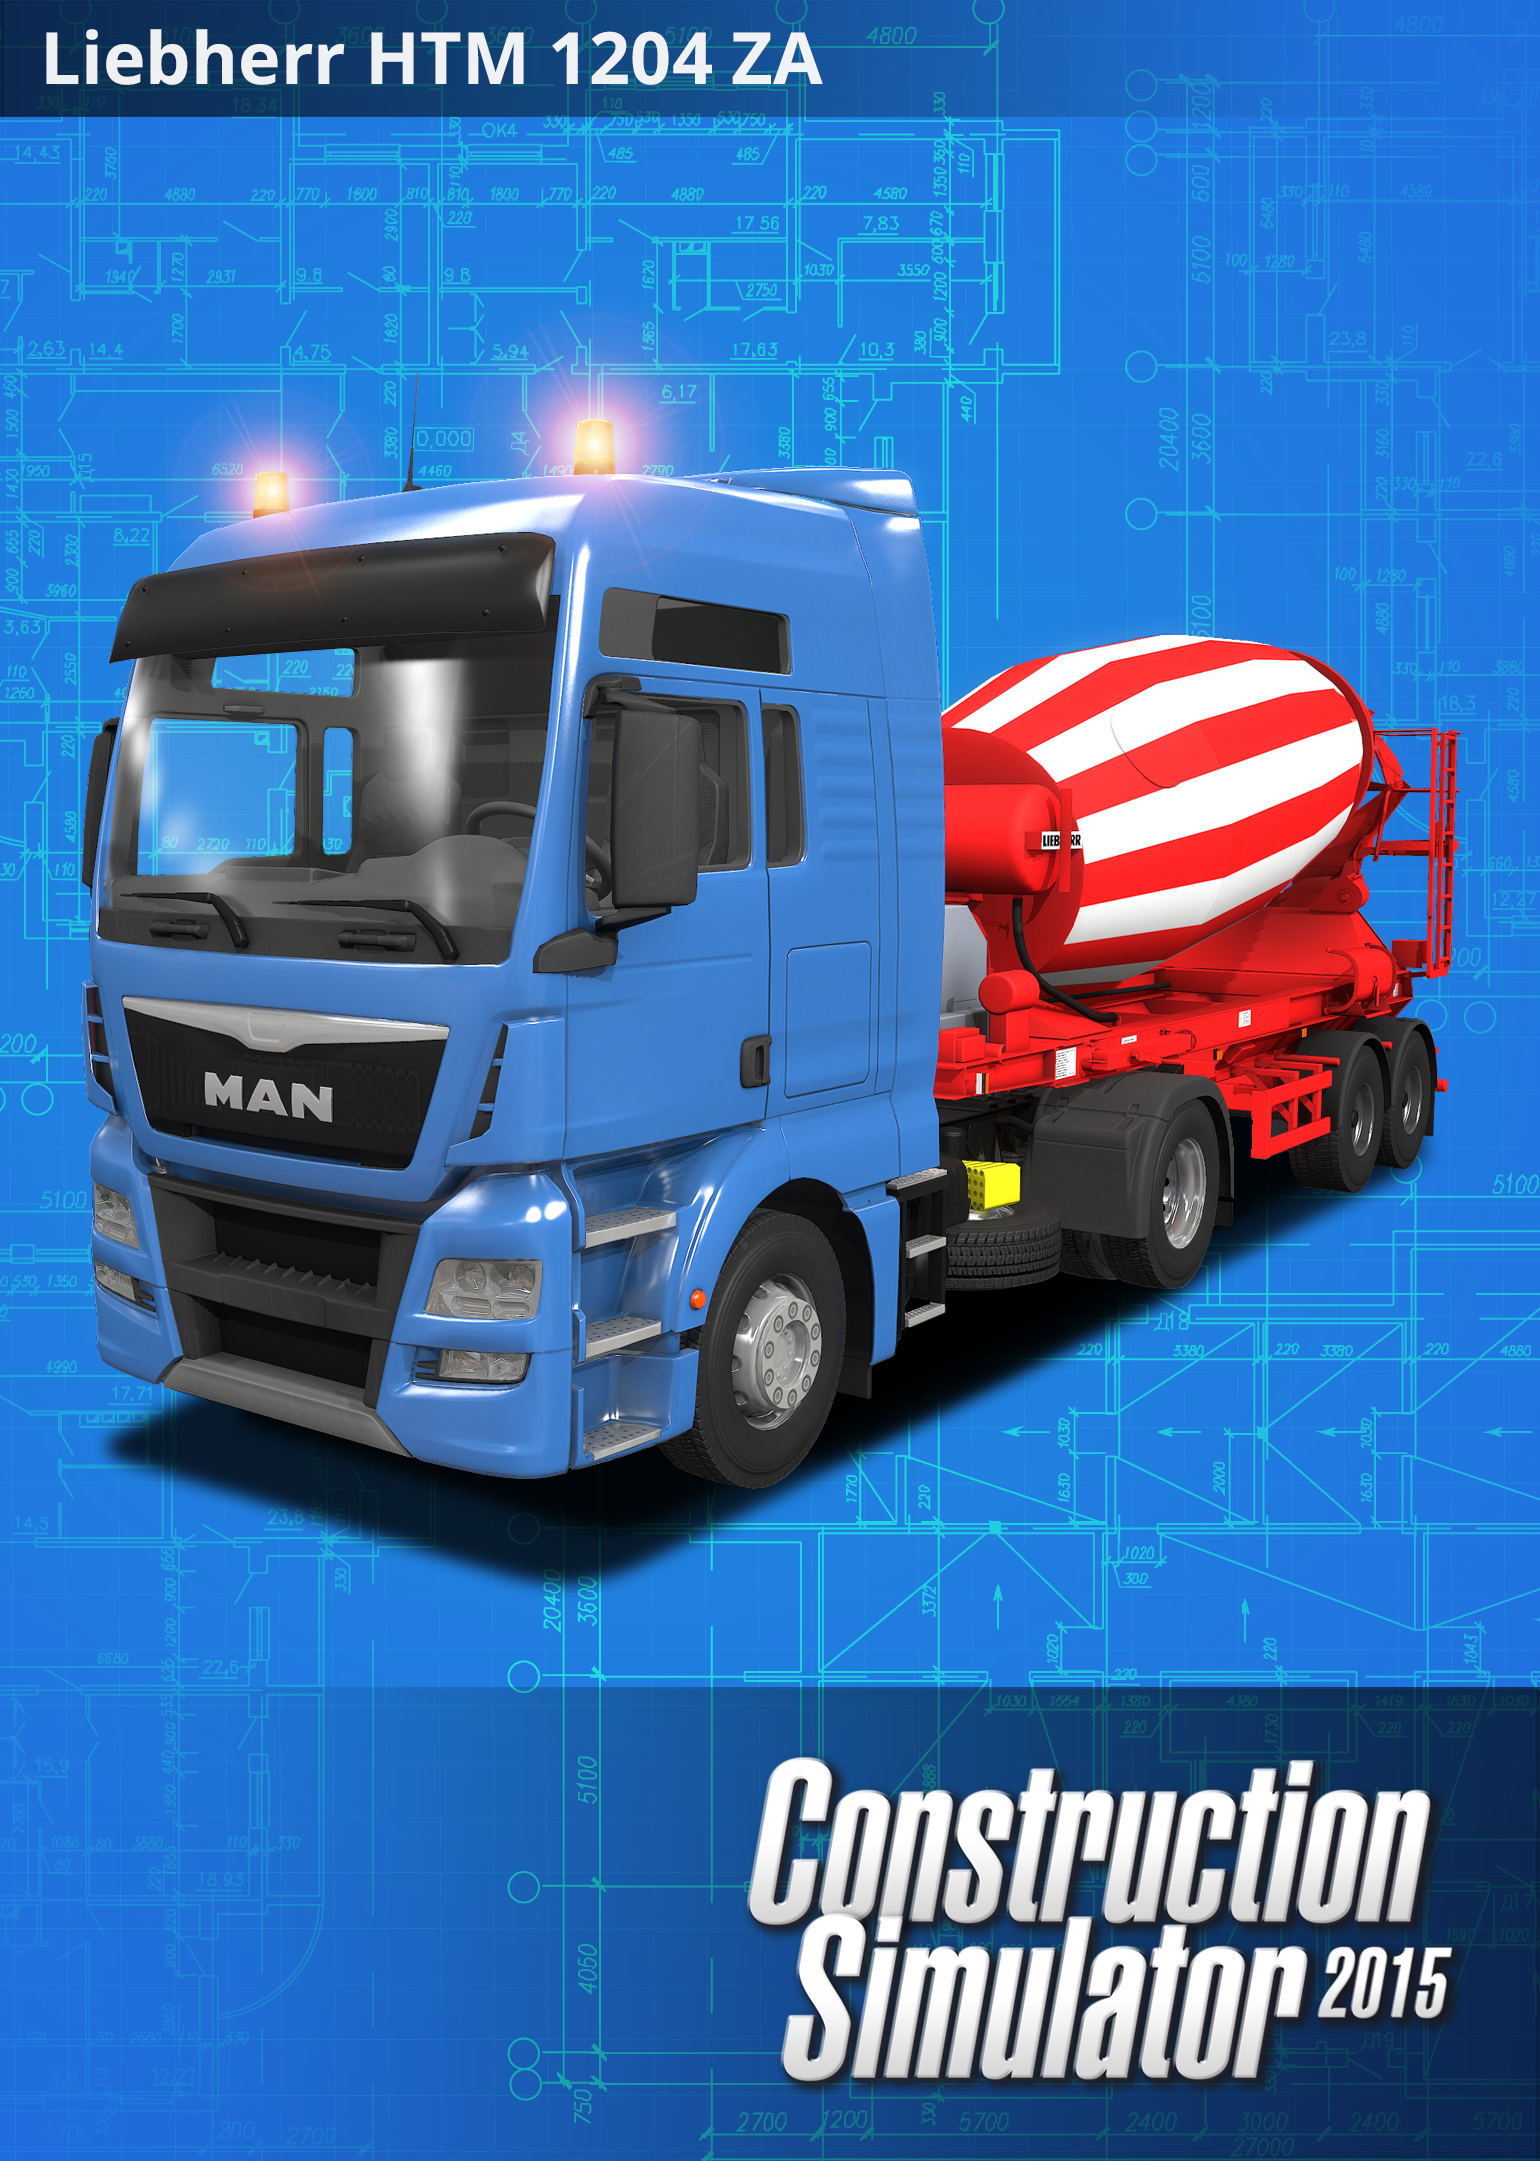 construction-simulator-2015-liebherr-htm-1204-za-online-game-code